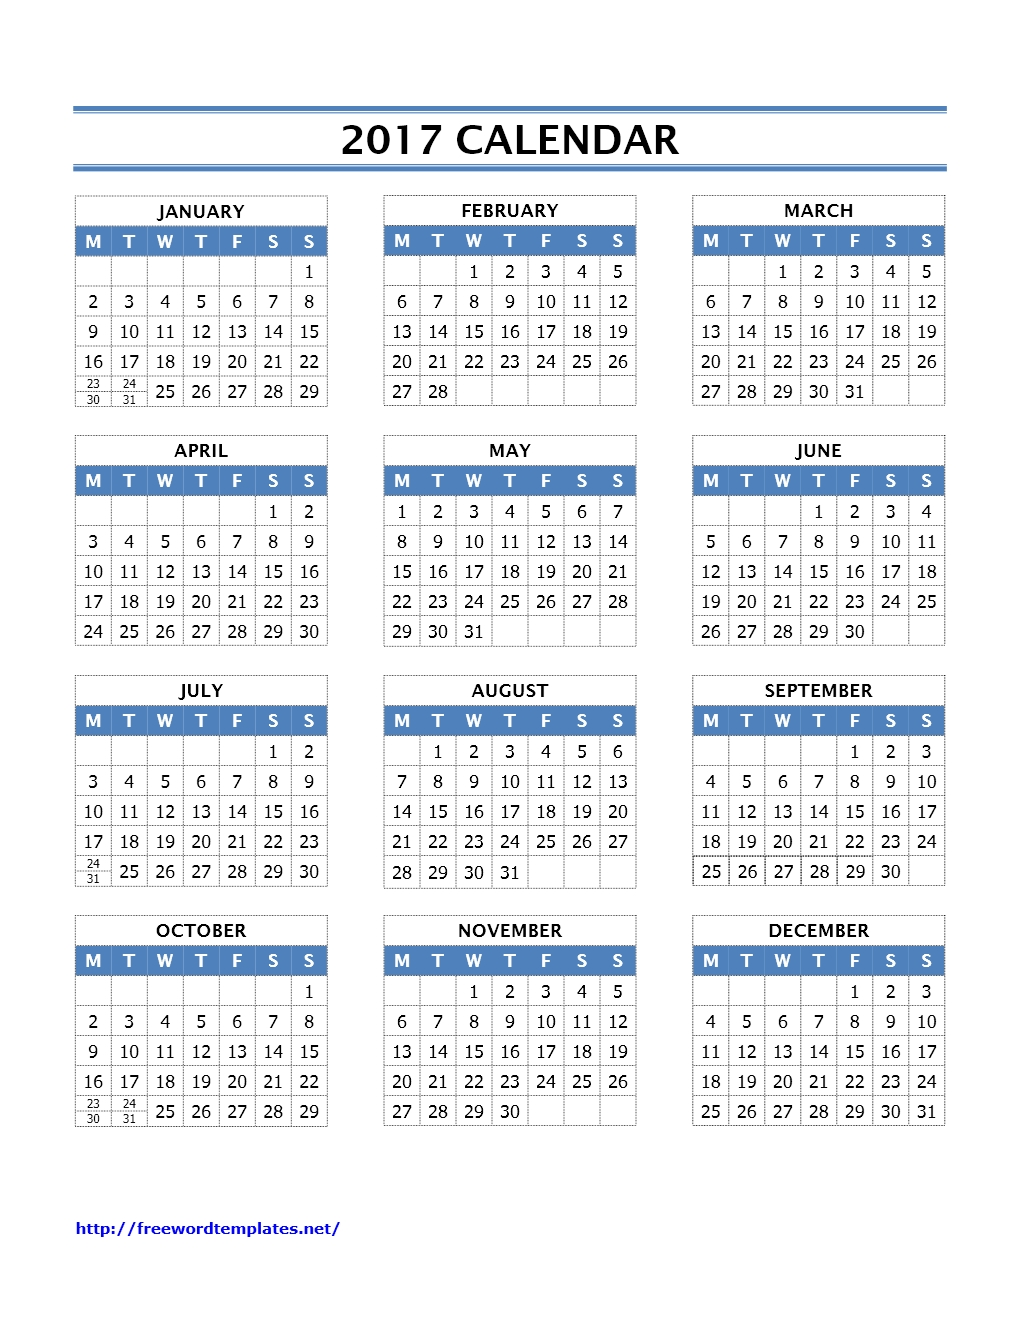 Calendar | Freewordtemplates.net